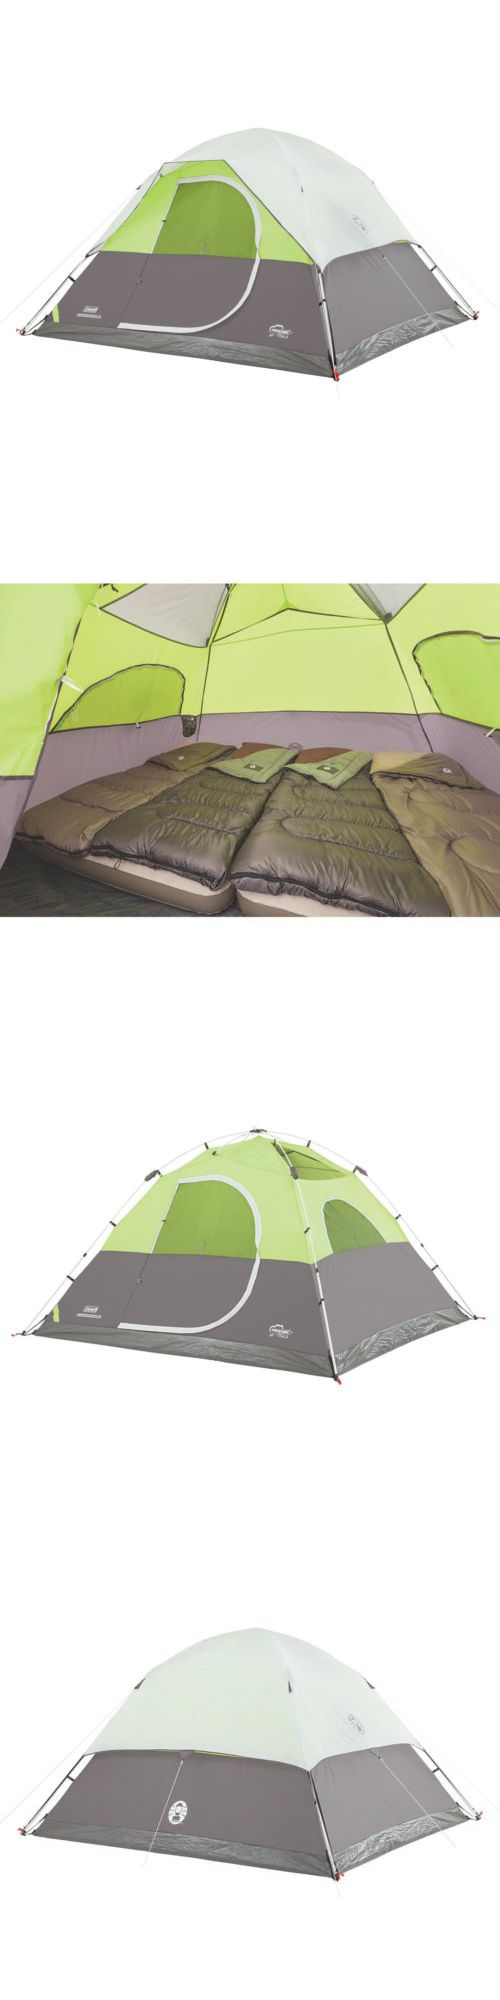 Other Camping Sleeping Gear 16040: Coleman Aspenglen Instant Dome 6 Person Tent BUY IT NOW ONLY: $146.42